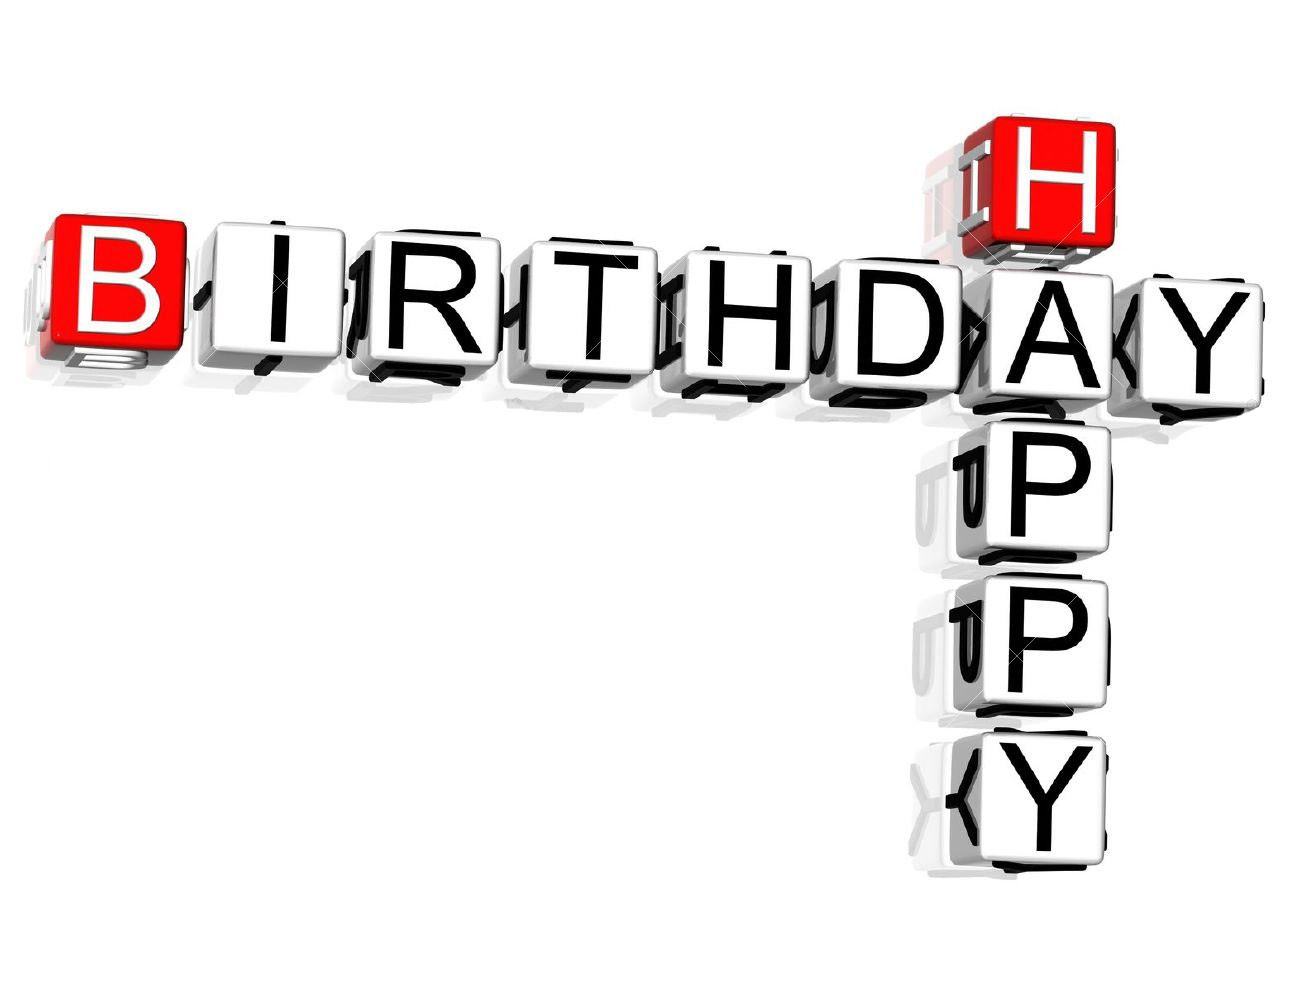 birthday background wallpaper hd ; 3D-Happy-Birthday-Crossword-text-White-Background-Full-HD-Wallpapers